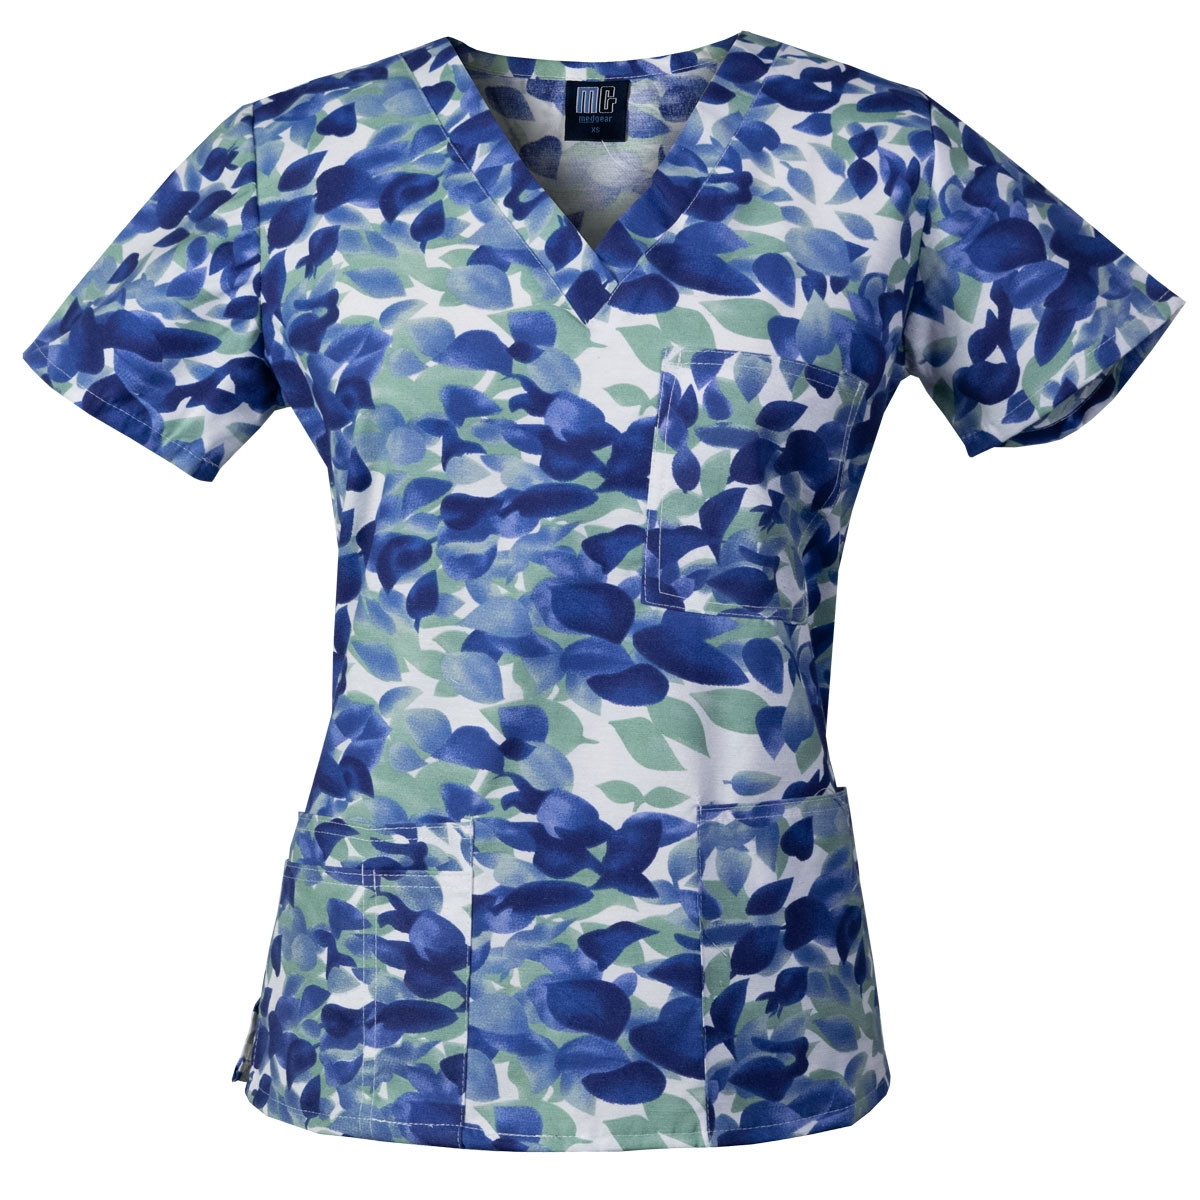 d89fc749408 Medgear Womens Fashion Scrubs Top, Printed V-neck with 4-Pockets. Display  Gallery Item 1 ...